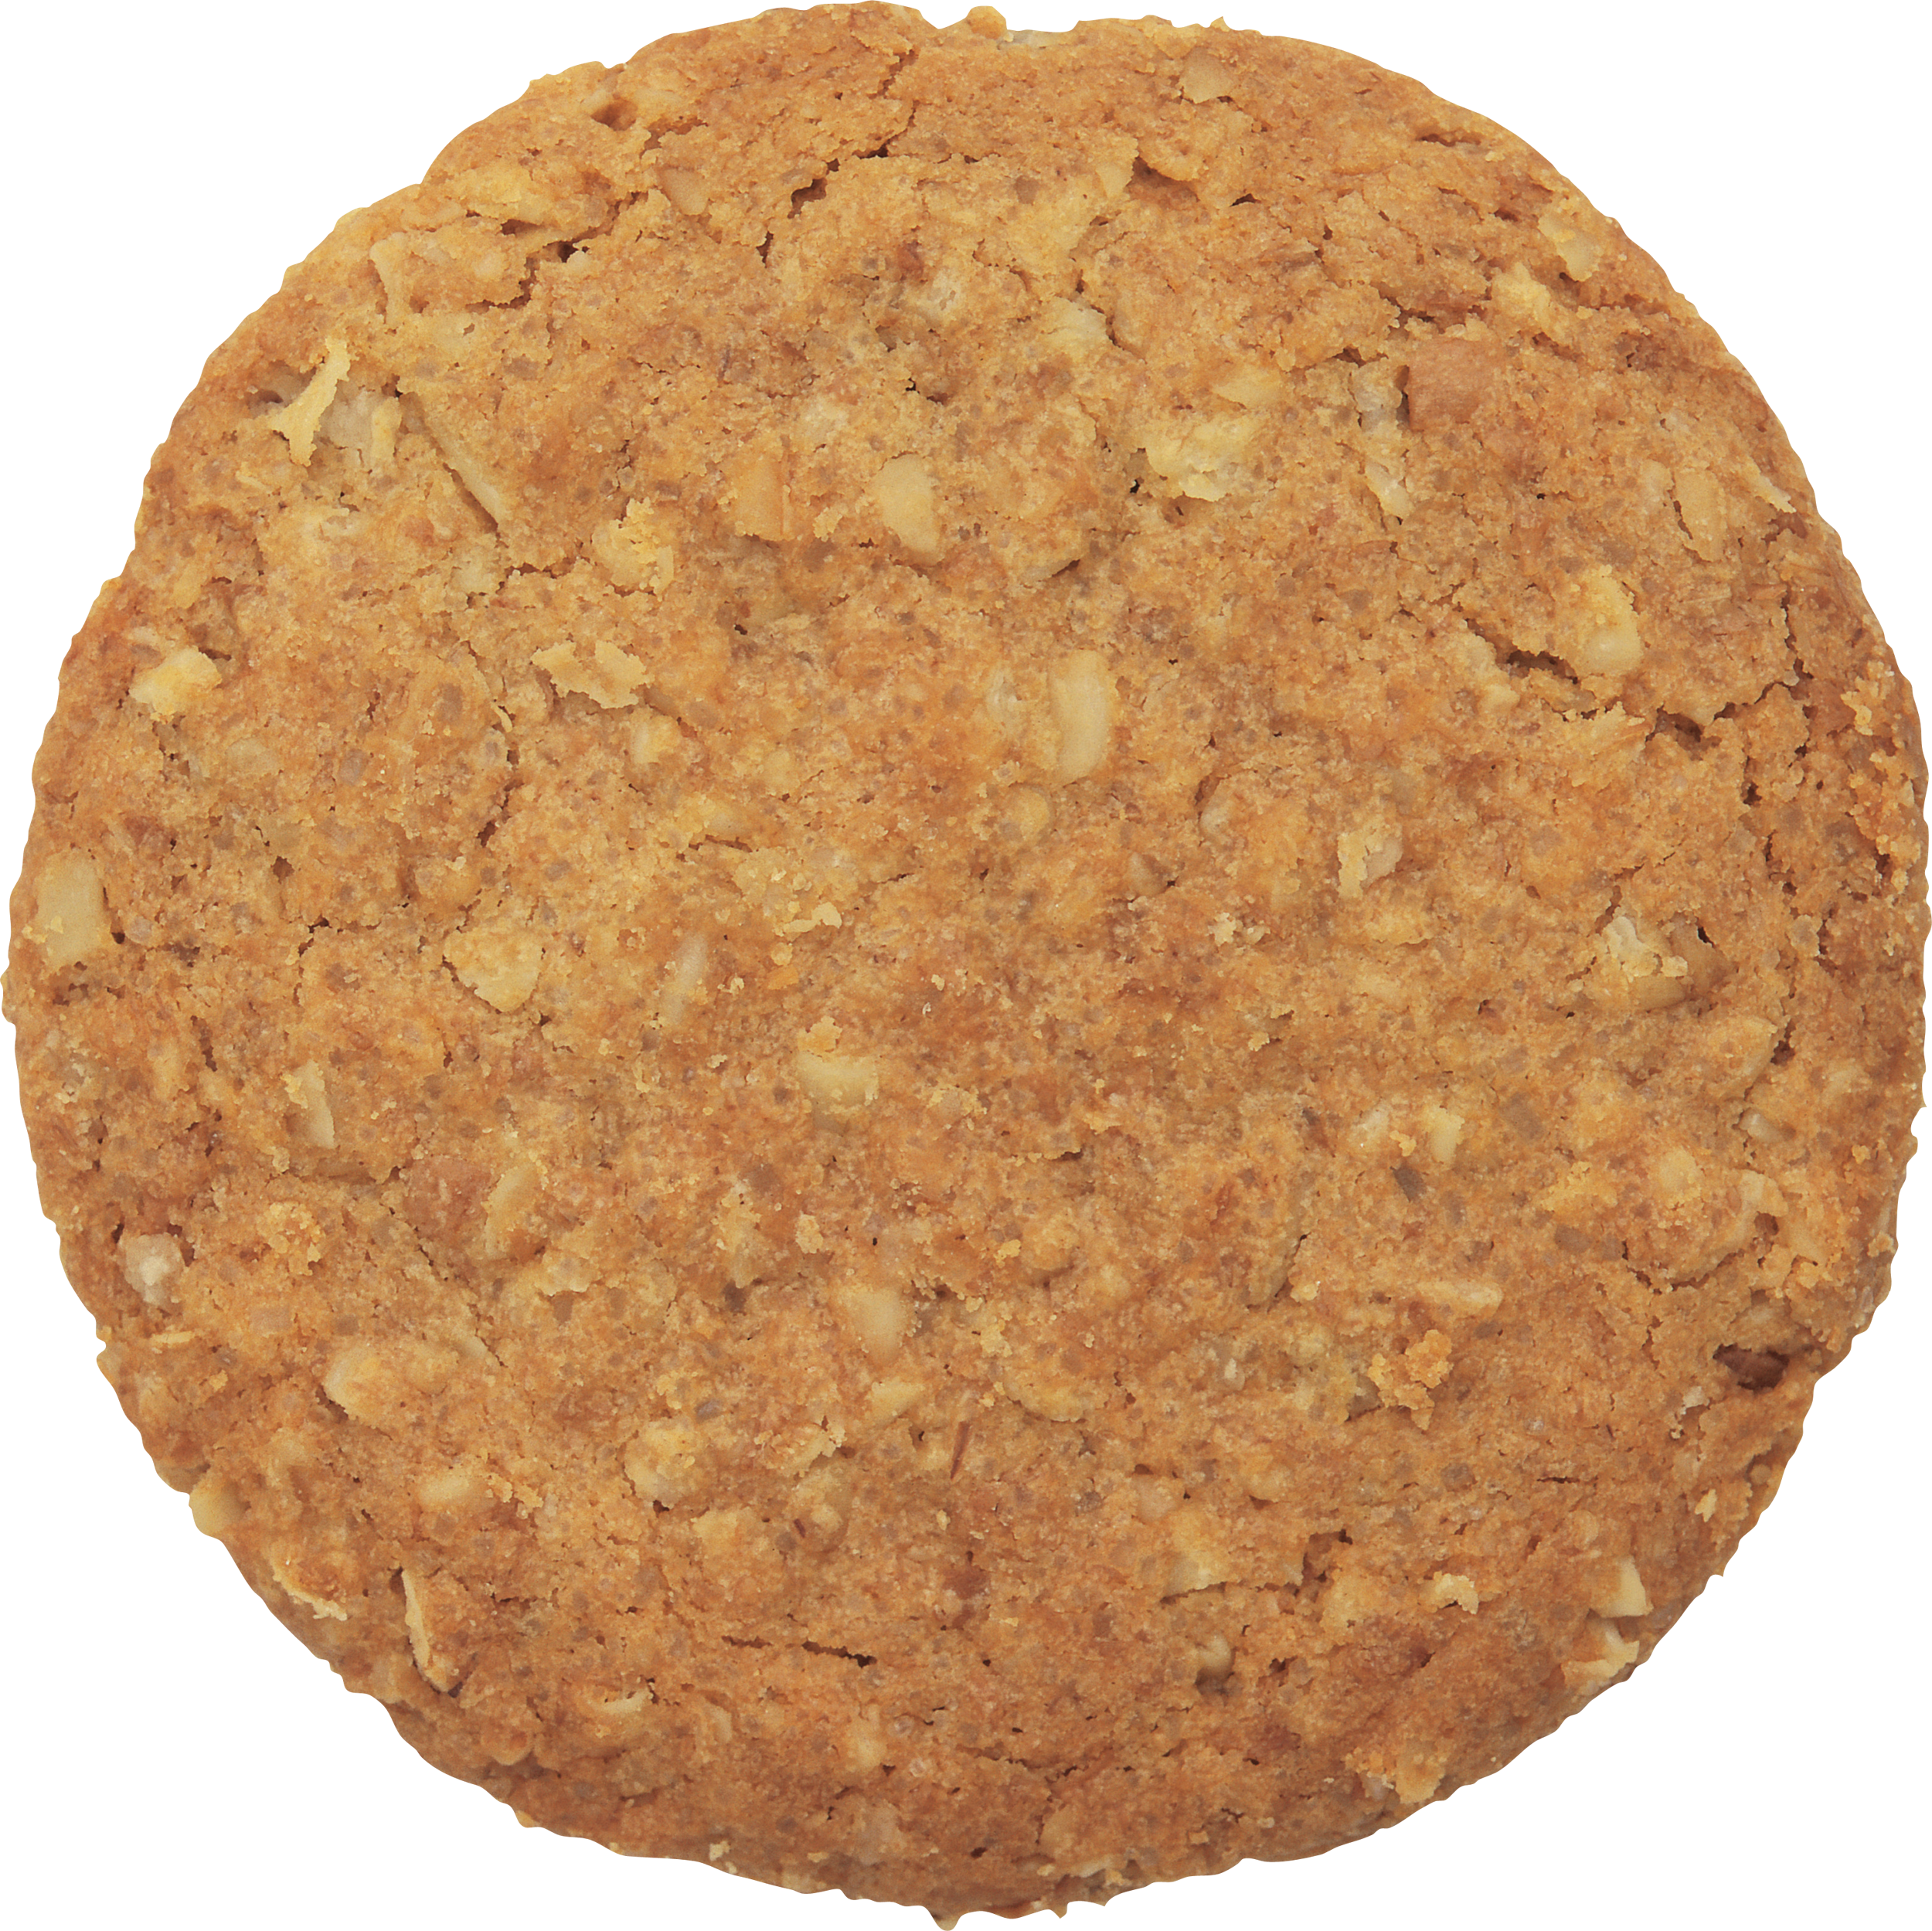 Biscuit png image purepng. Cookies clipart round cookie